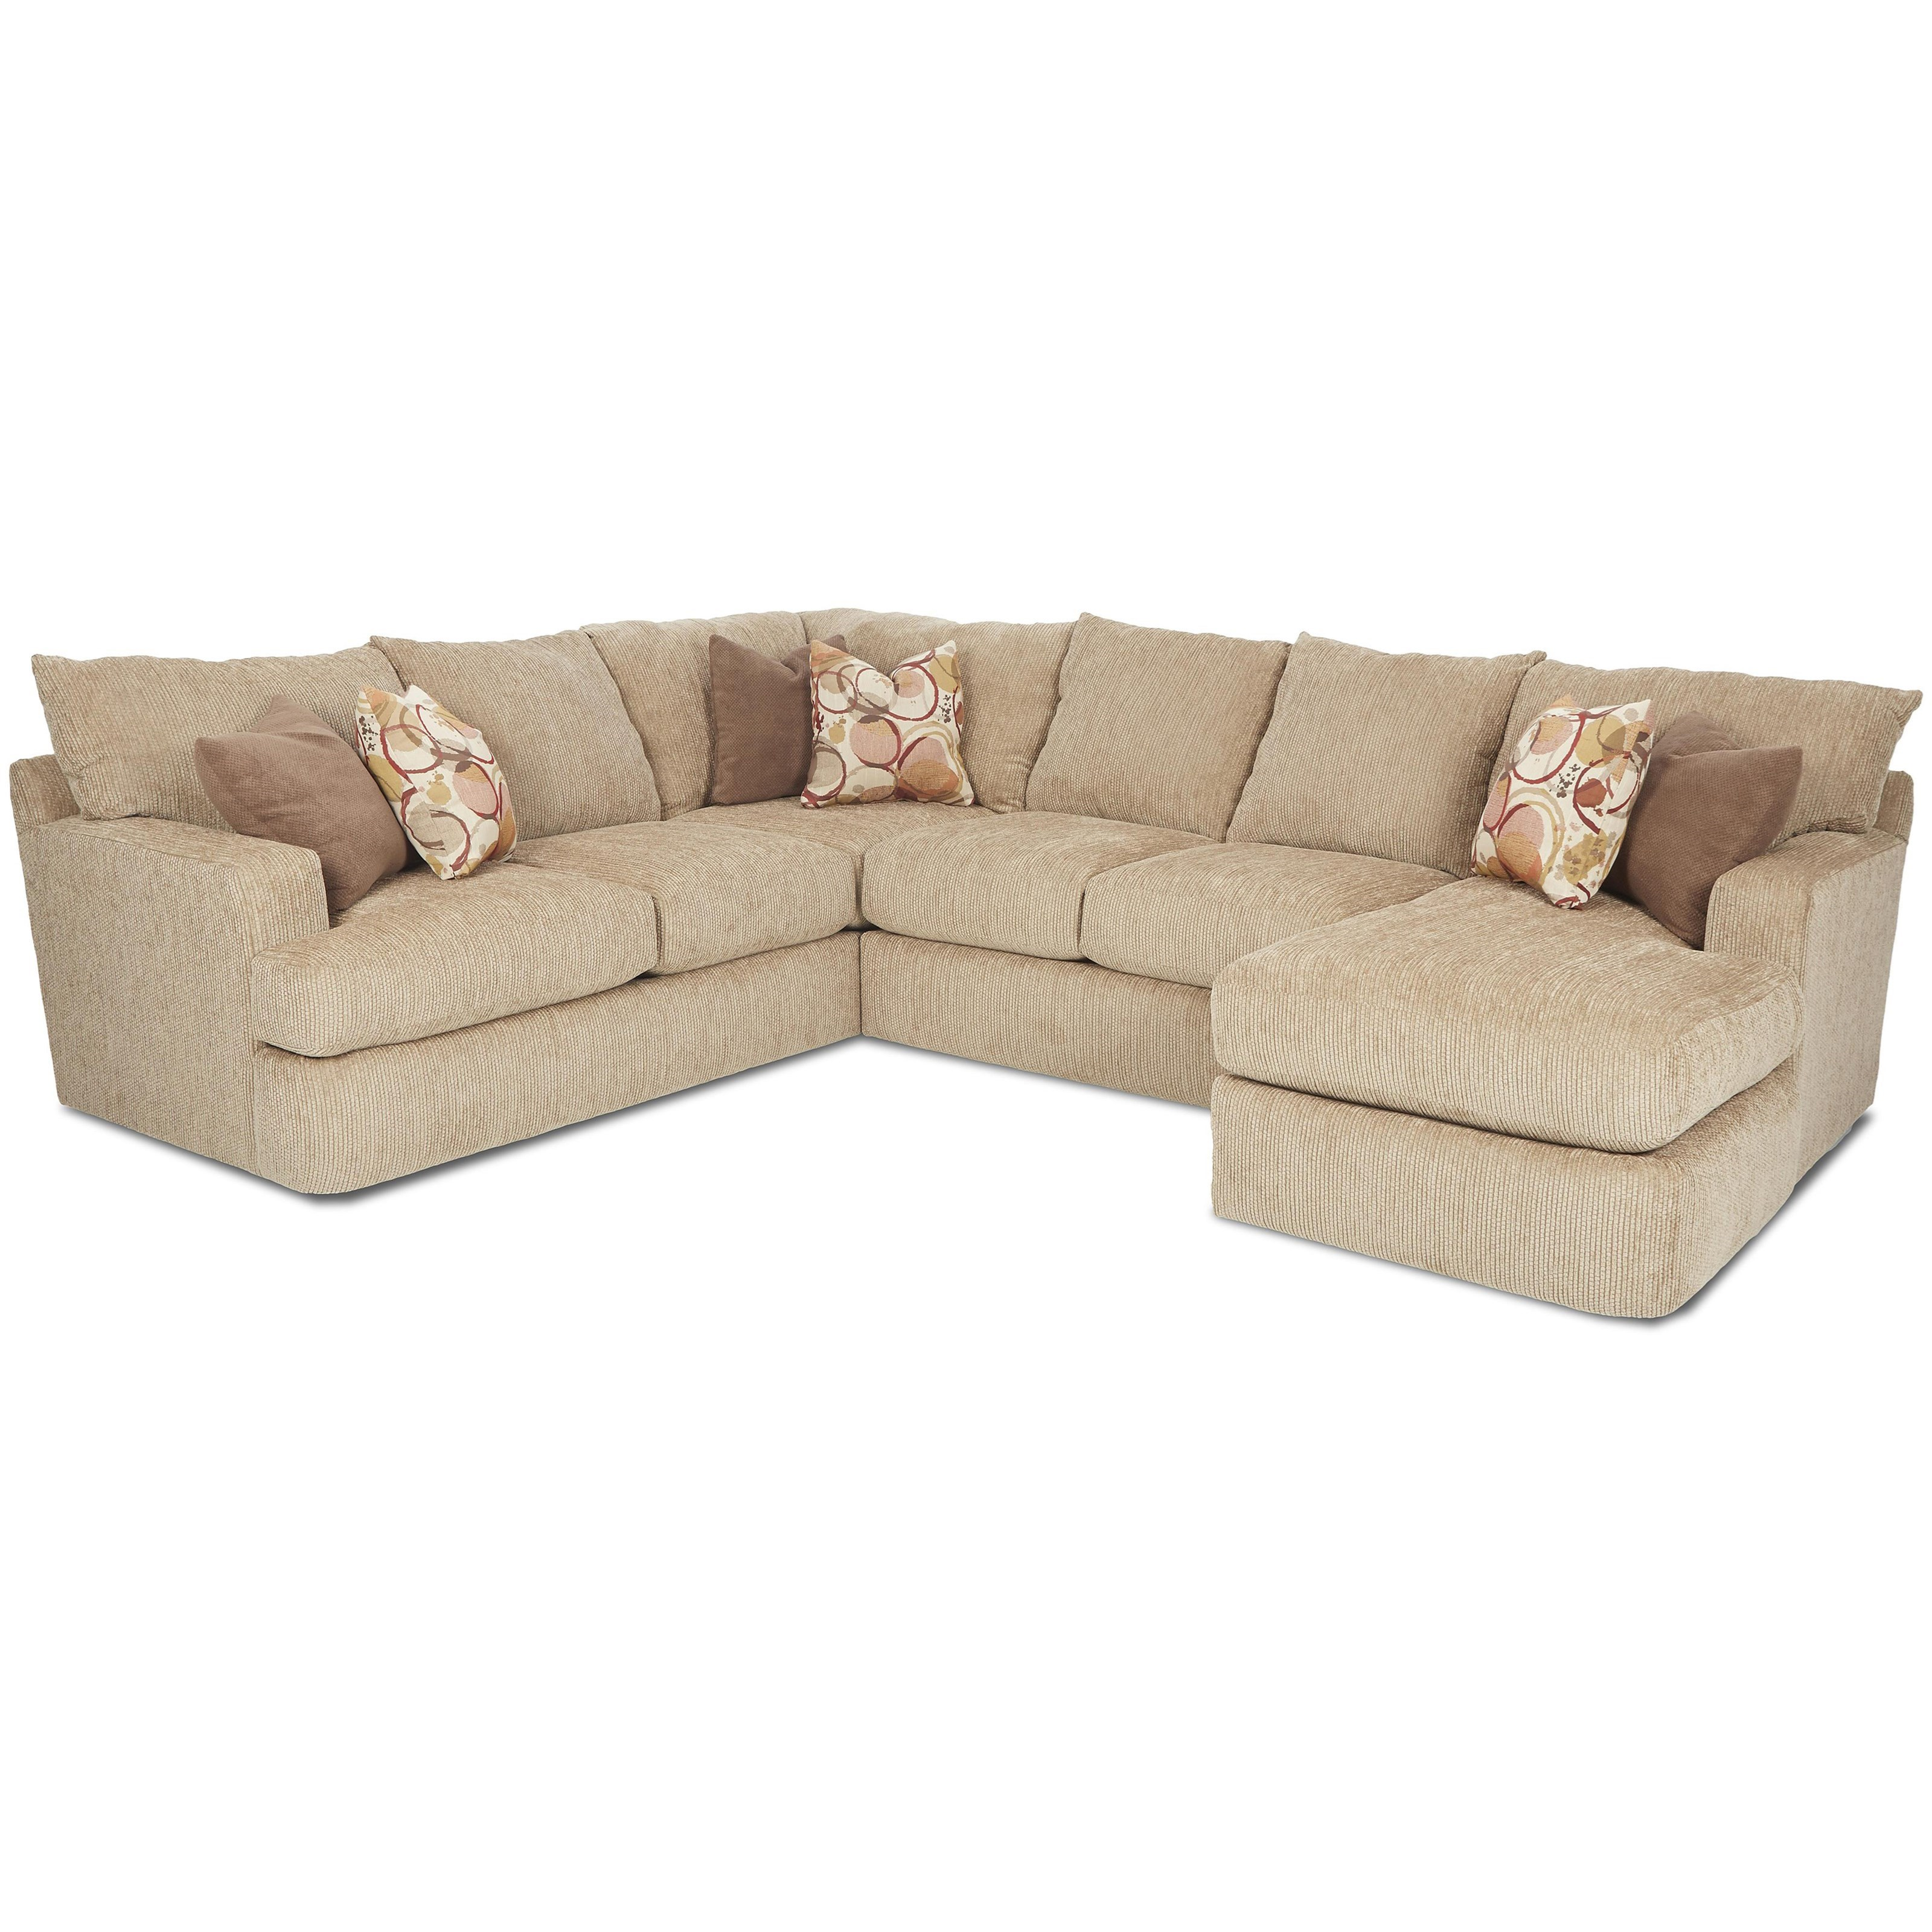 klaussner sofa and loveseat set high quality bed mattress oliver contemporary three piece sectional